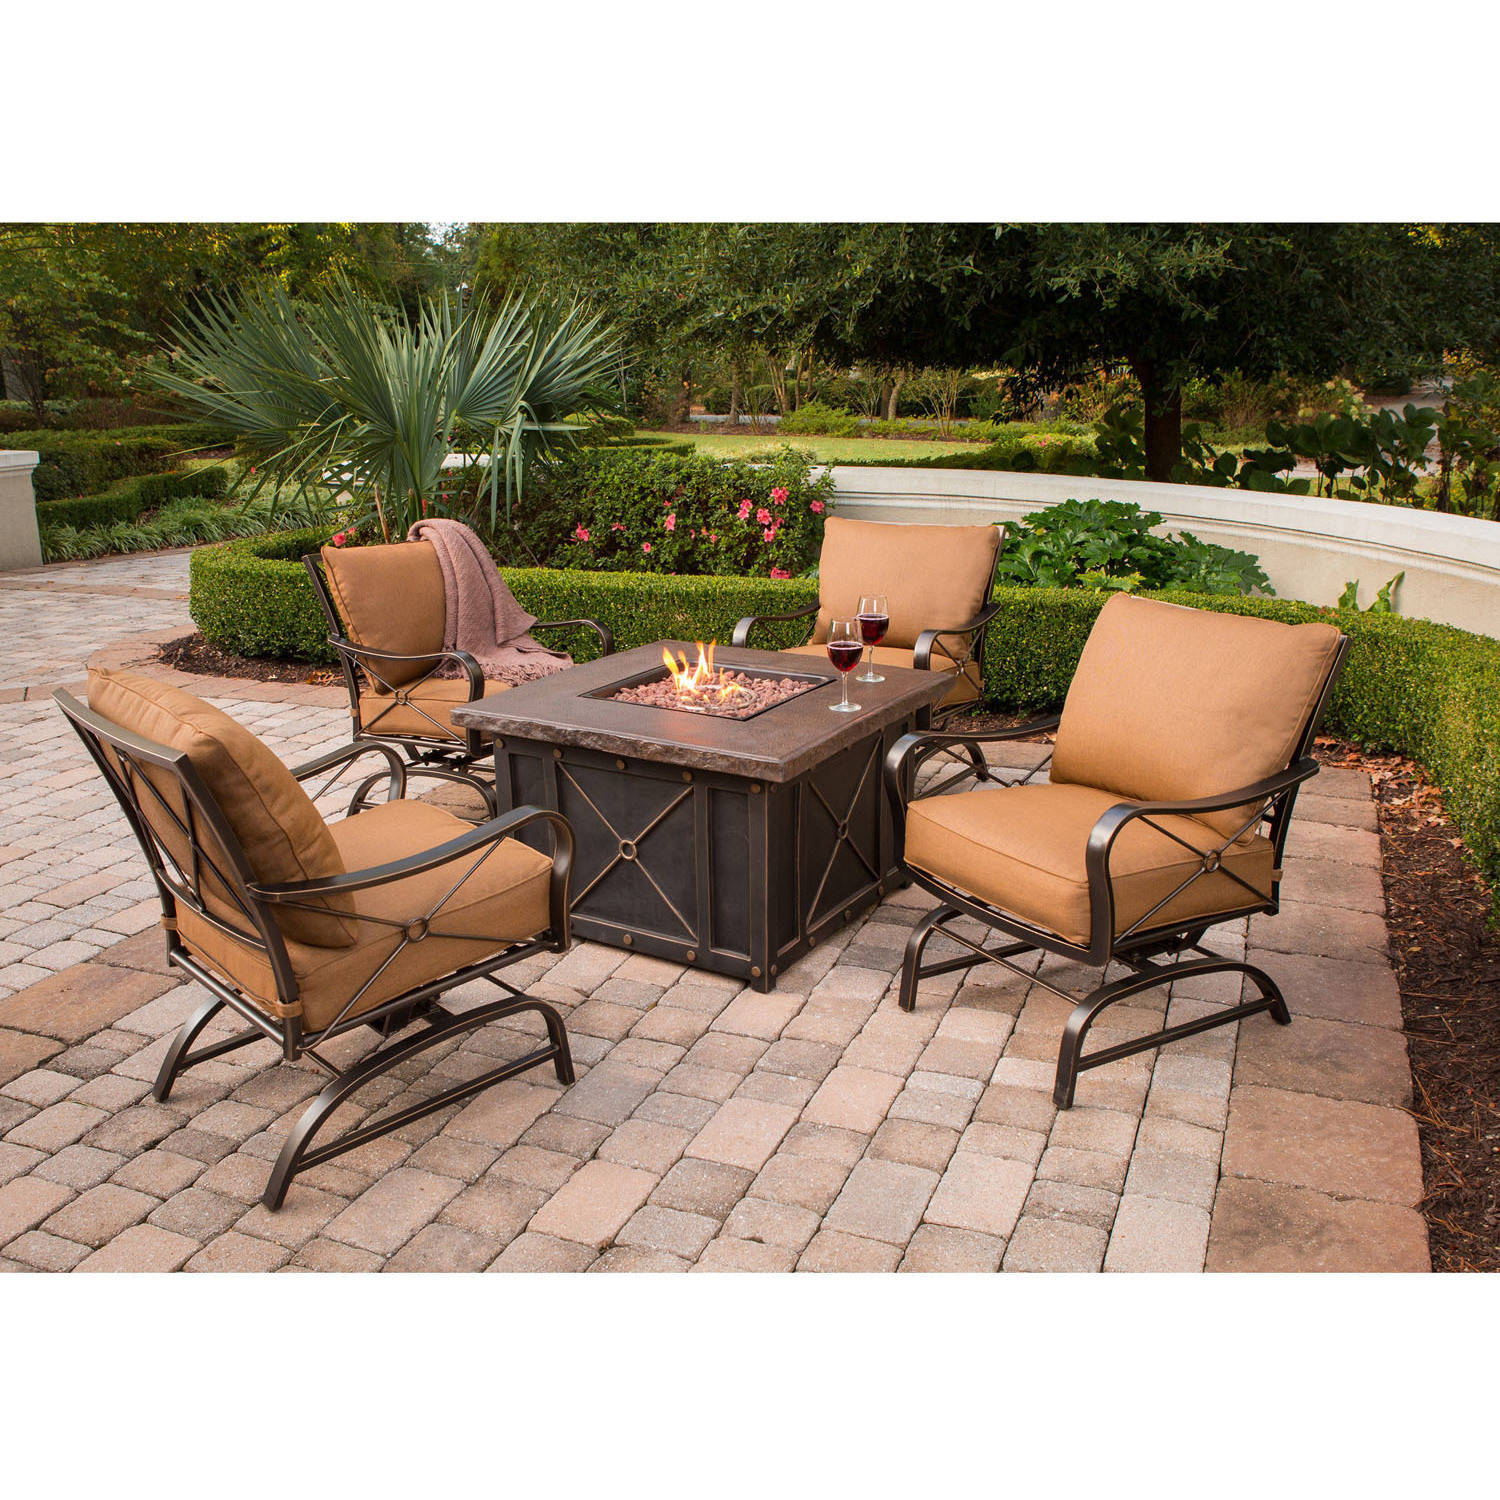 Cambridge Bradford 5 Piece Fire Pit Lounge Set